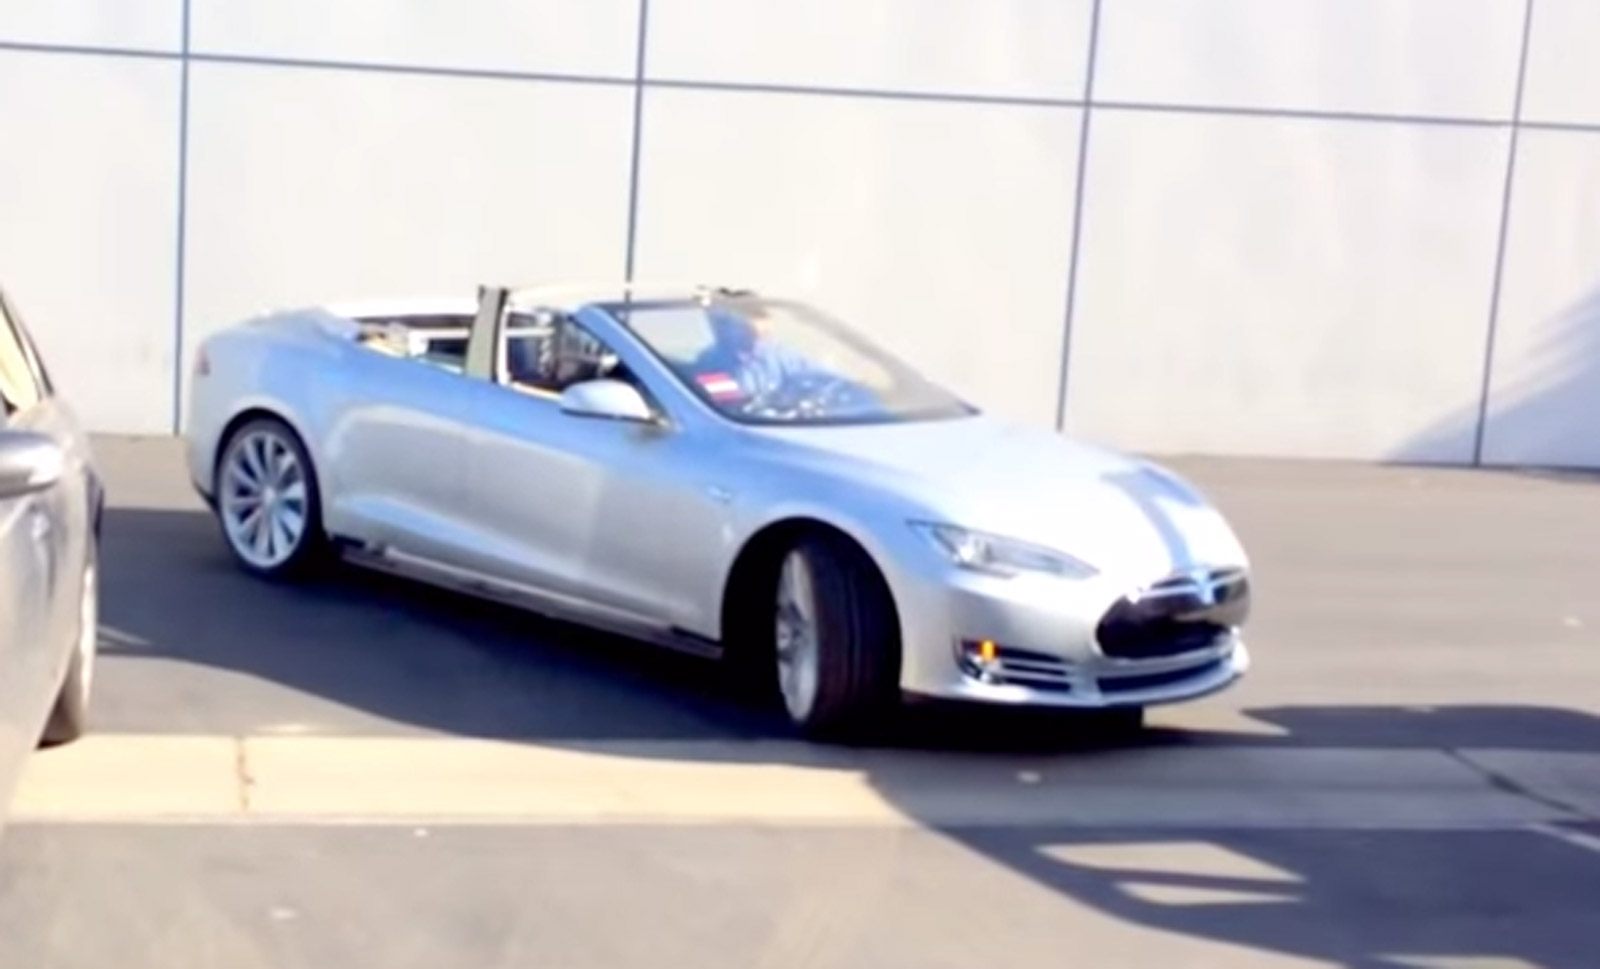 Update First Tesla Model S Convertible Video Went Up